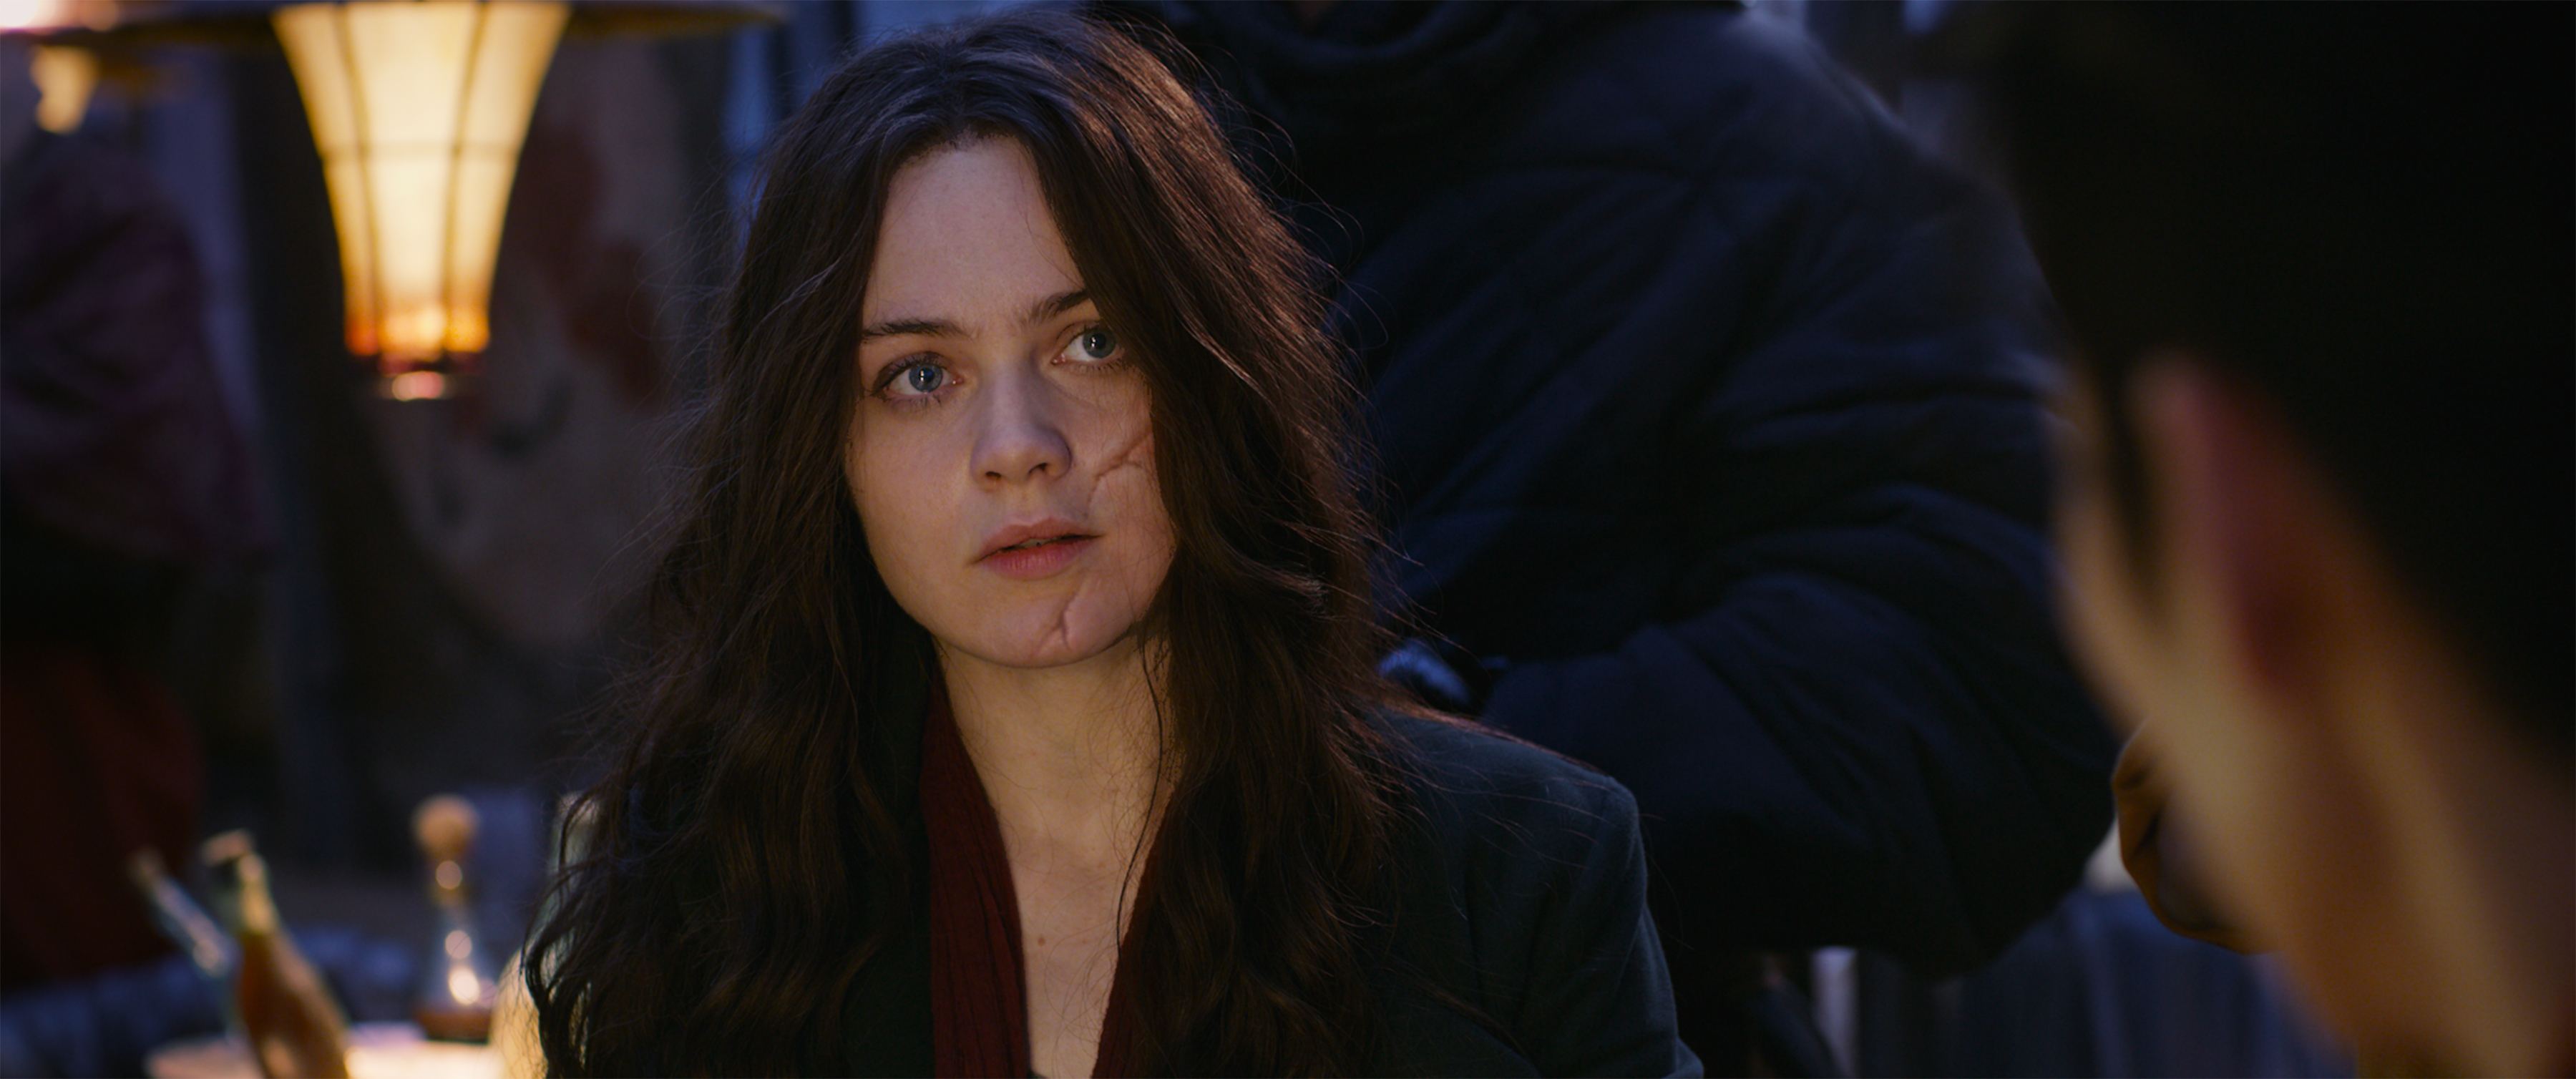 Mortal Engines A post-apocalyptic adventure film delivers a visually stunning world!